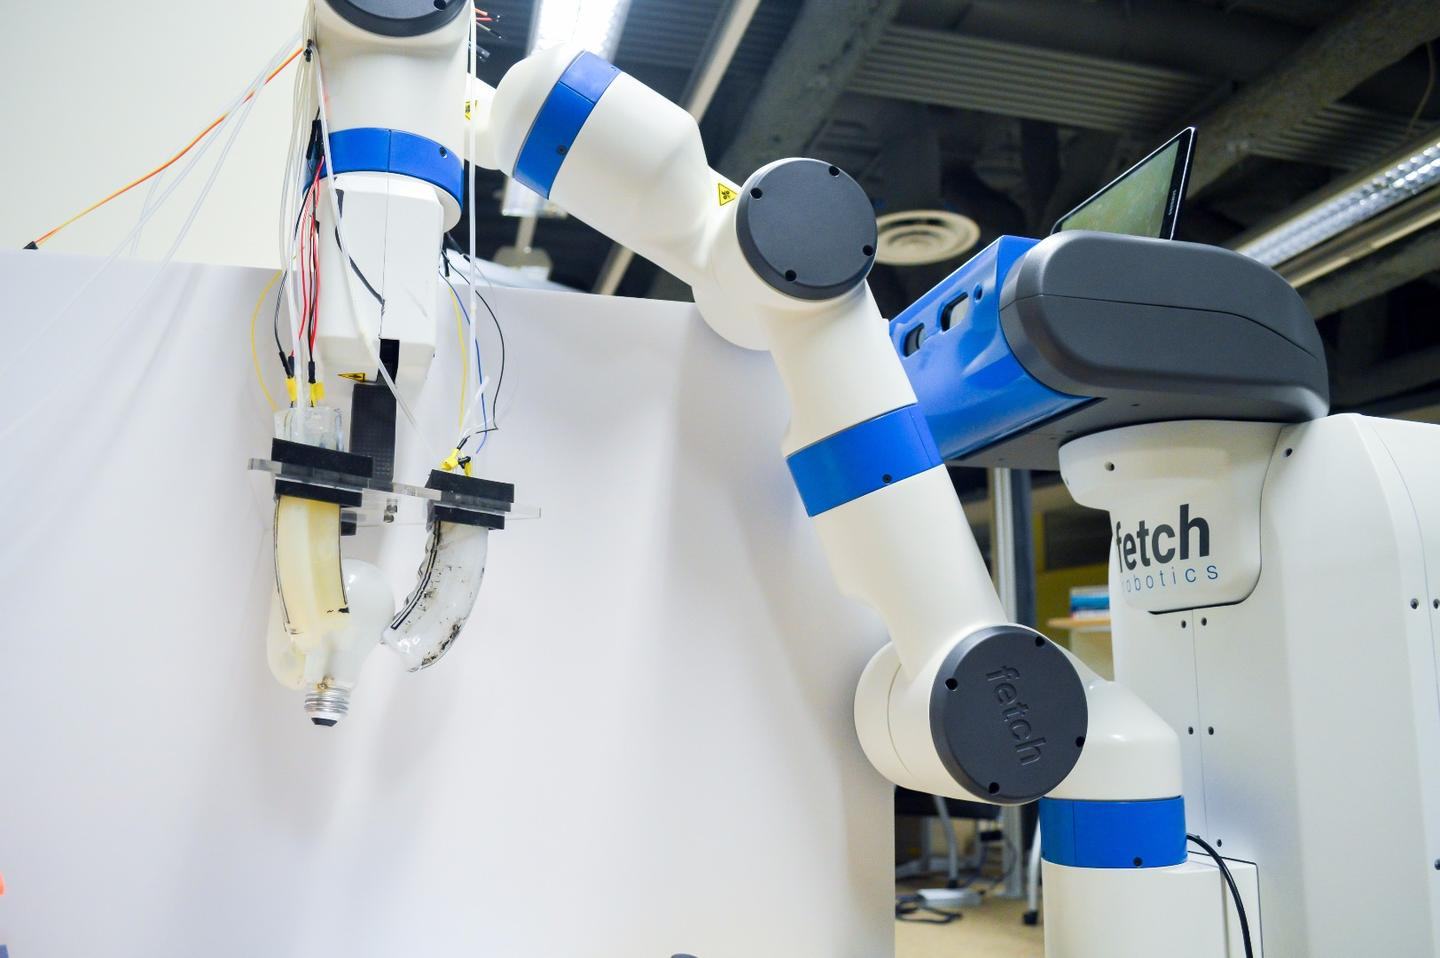 Researchers attached the gripper to the arm of a Fetch Robotics robot